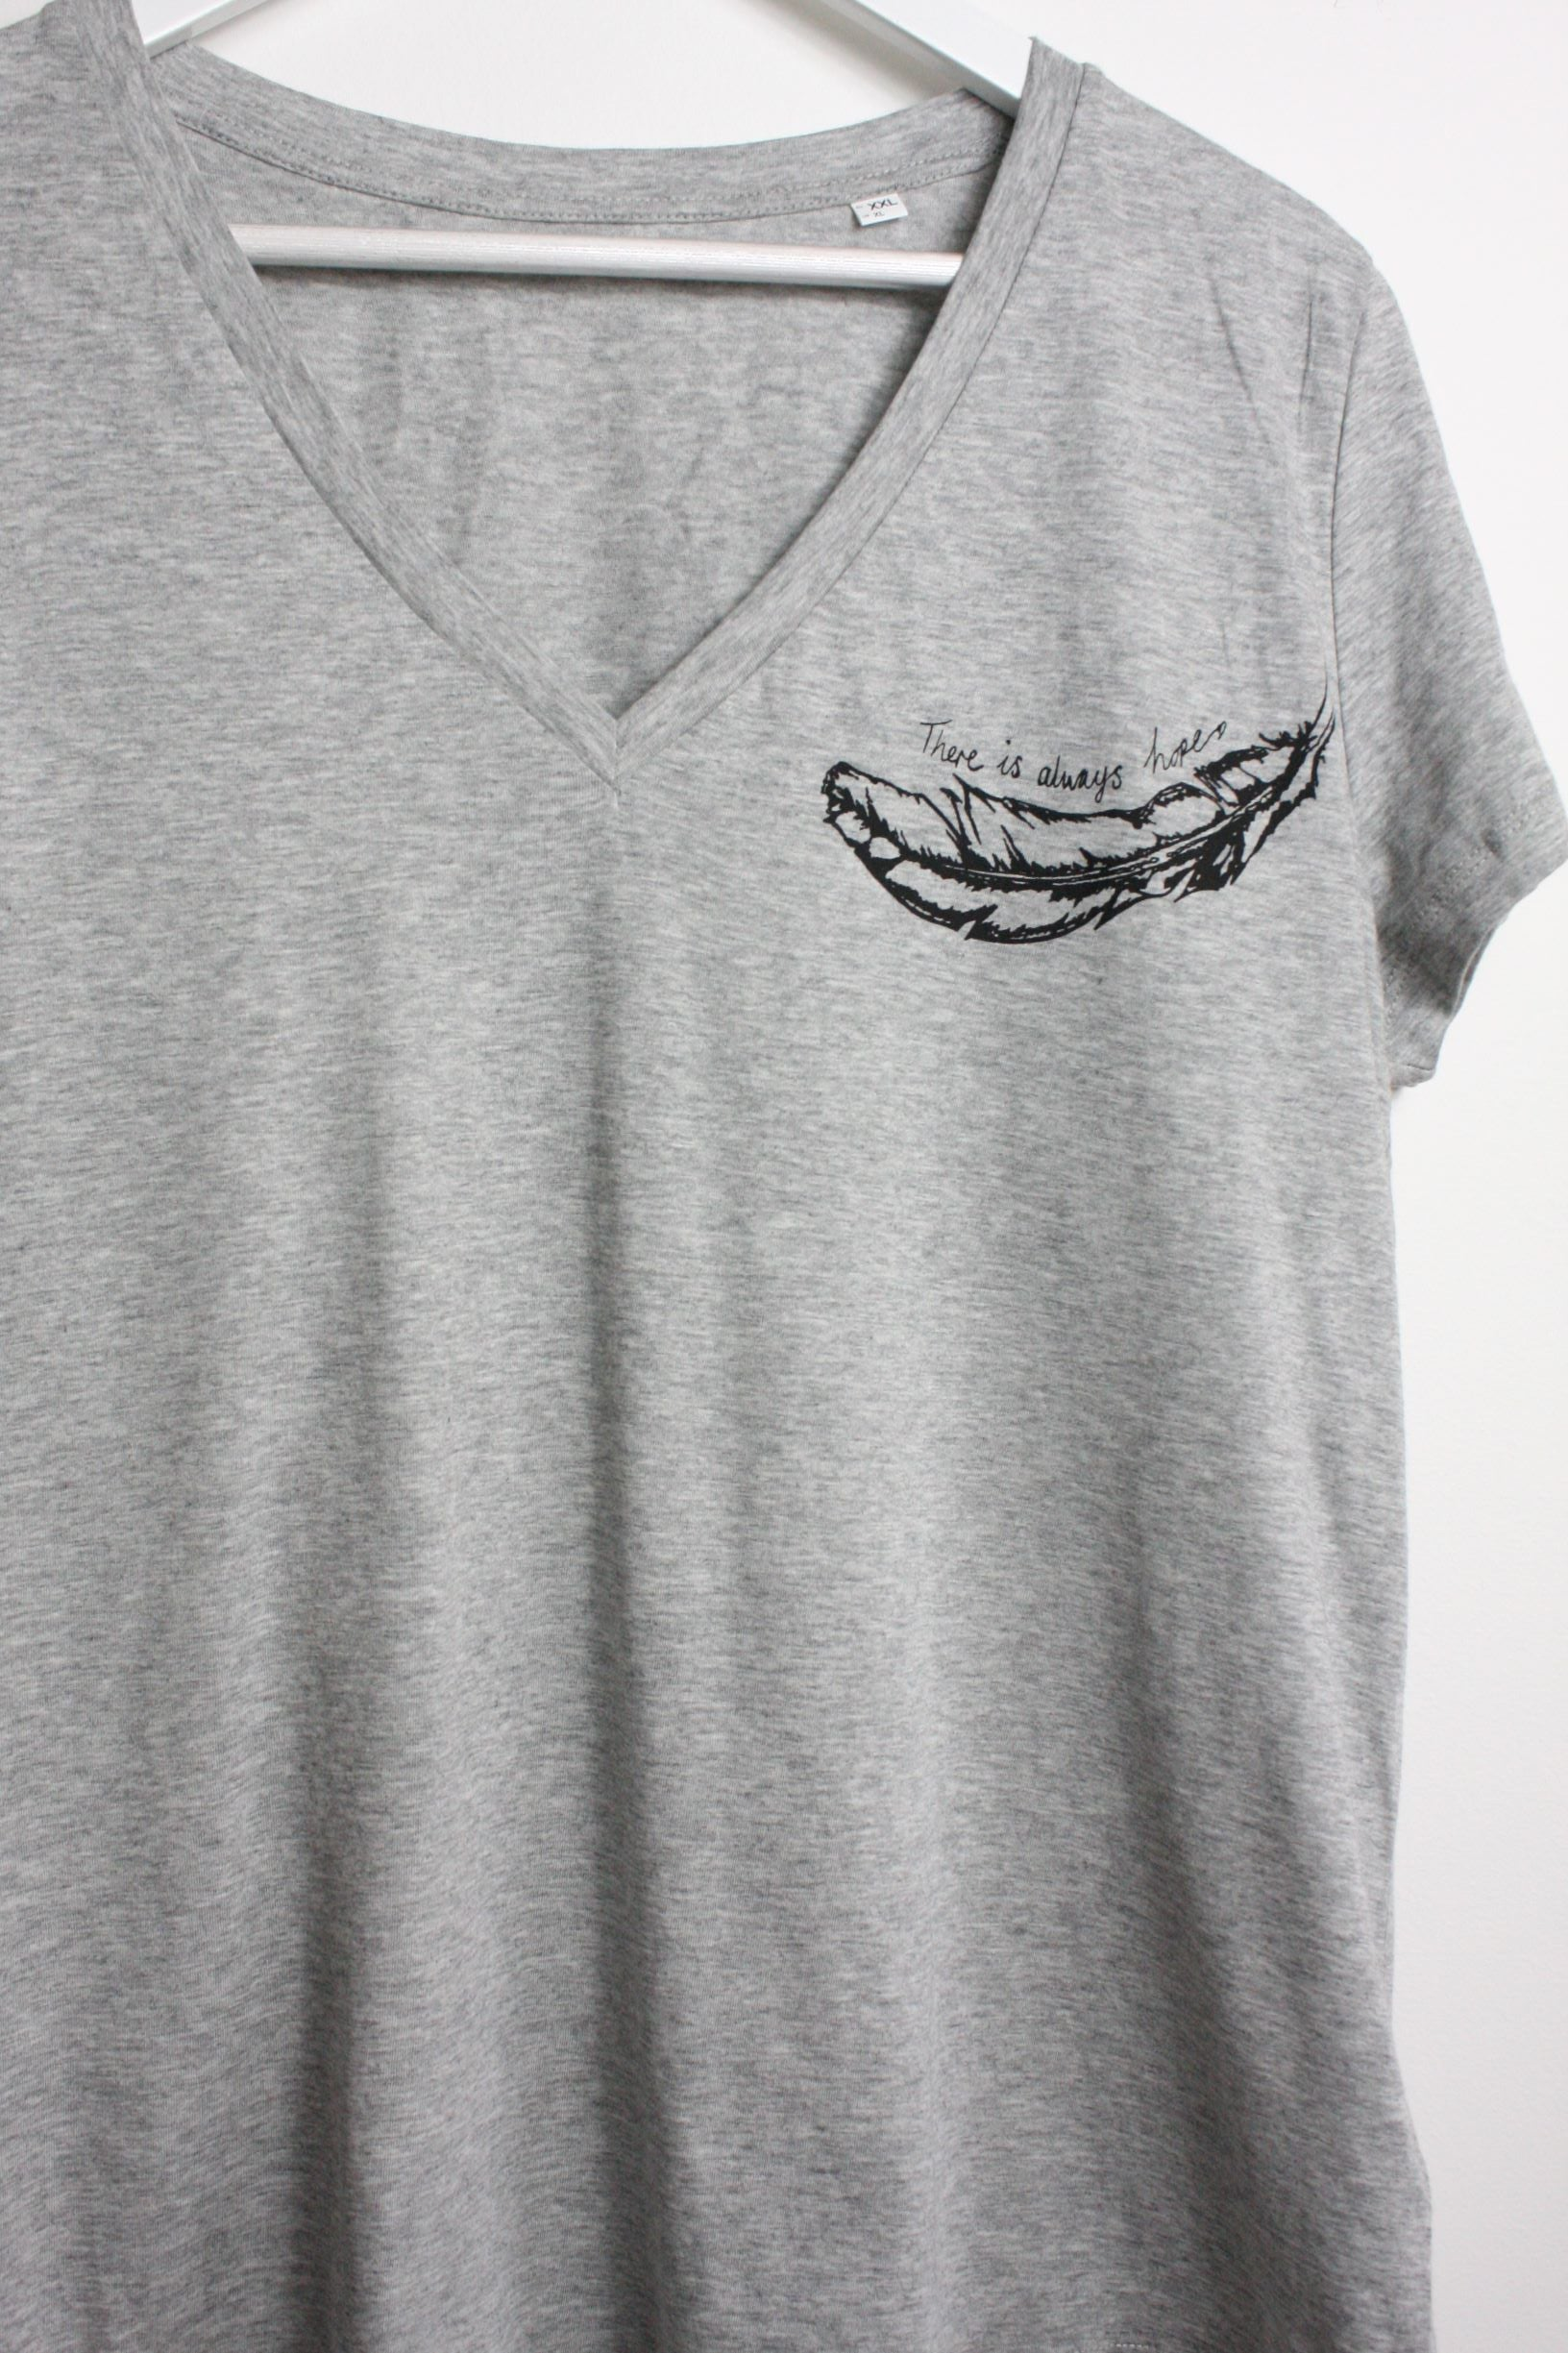 Grey v neck t shirt with black feather design